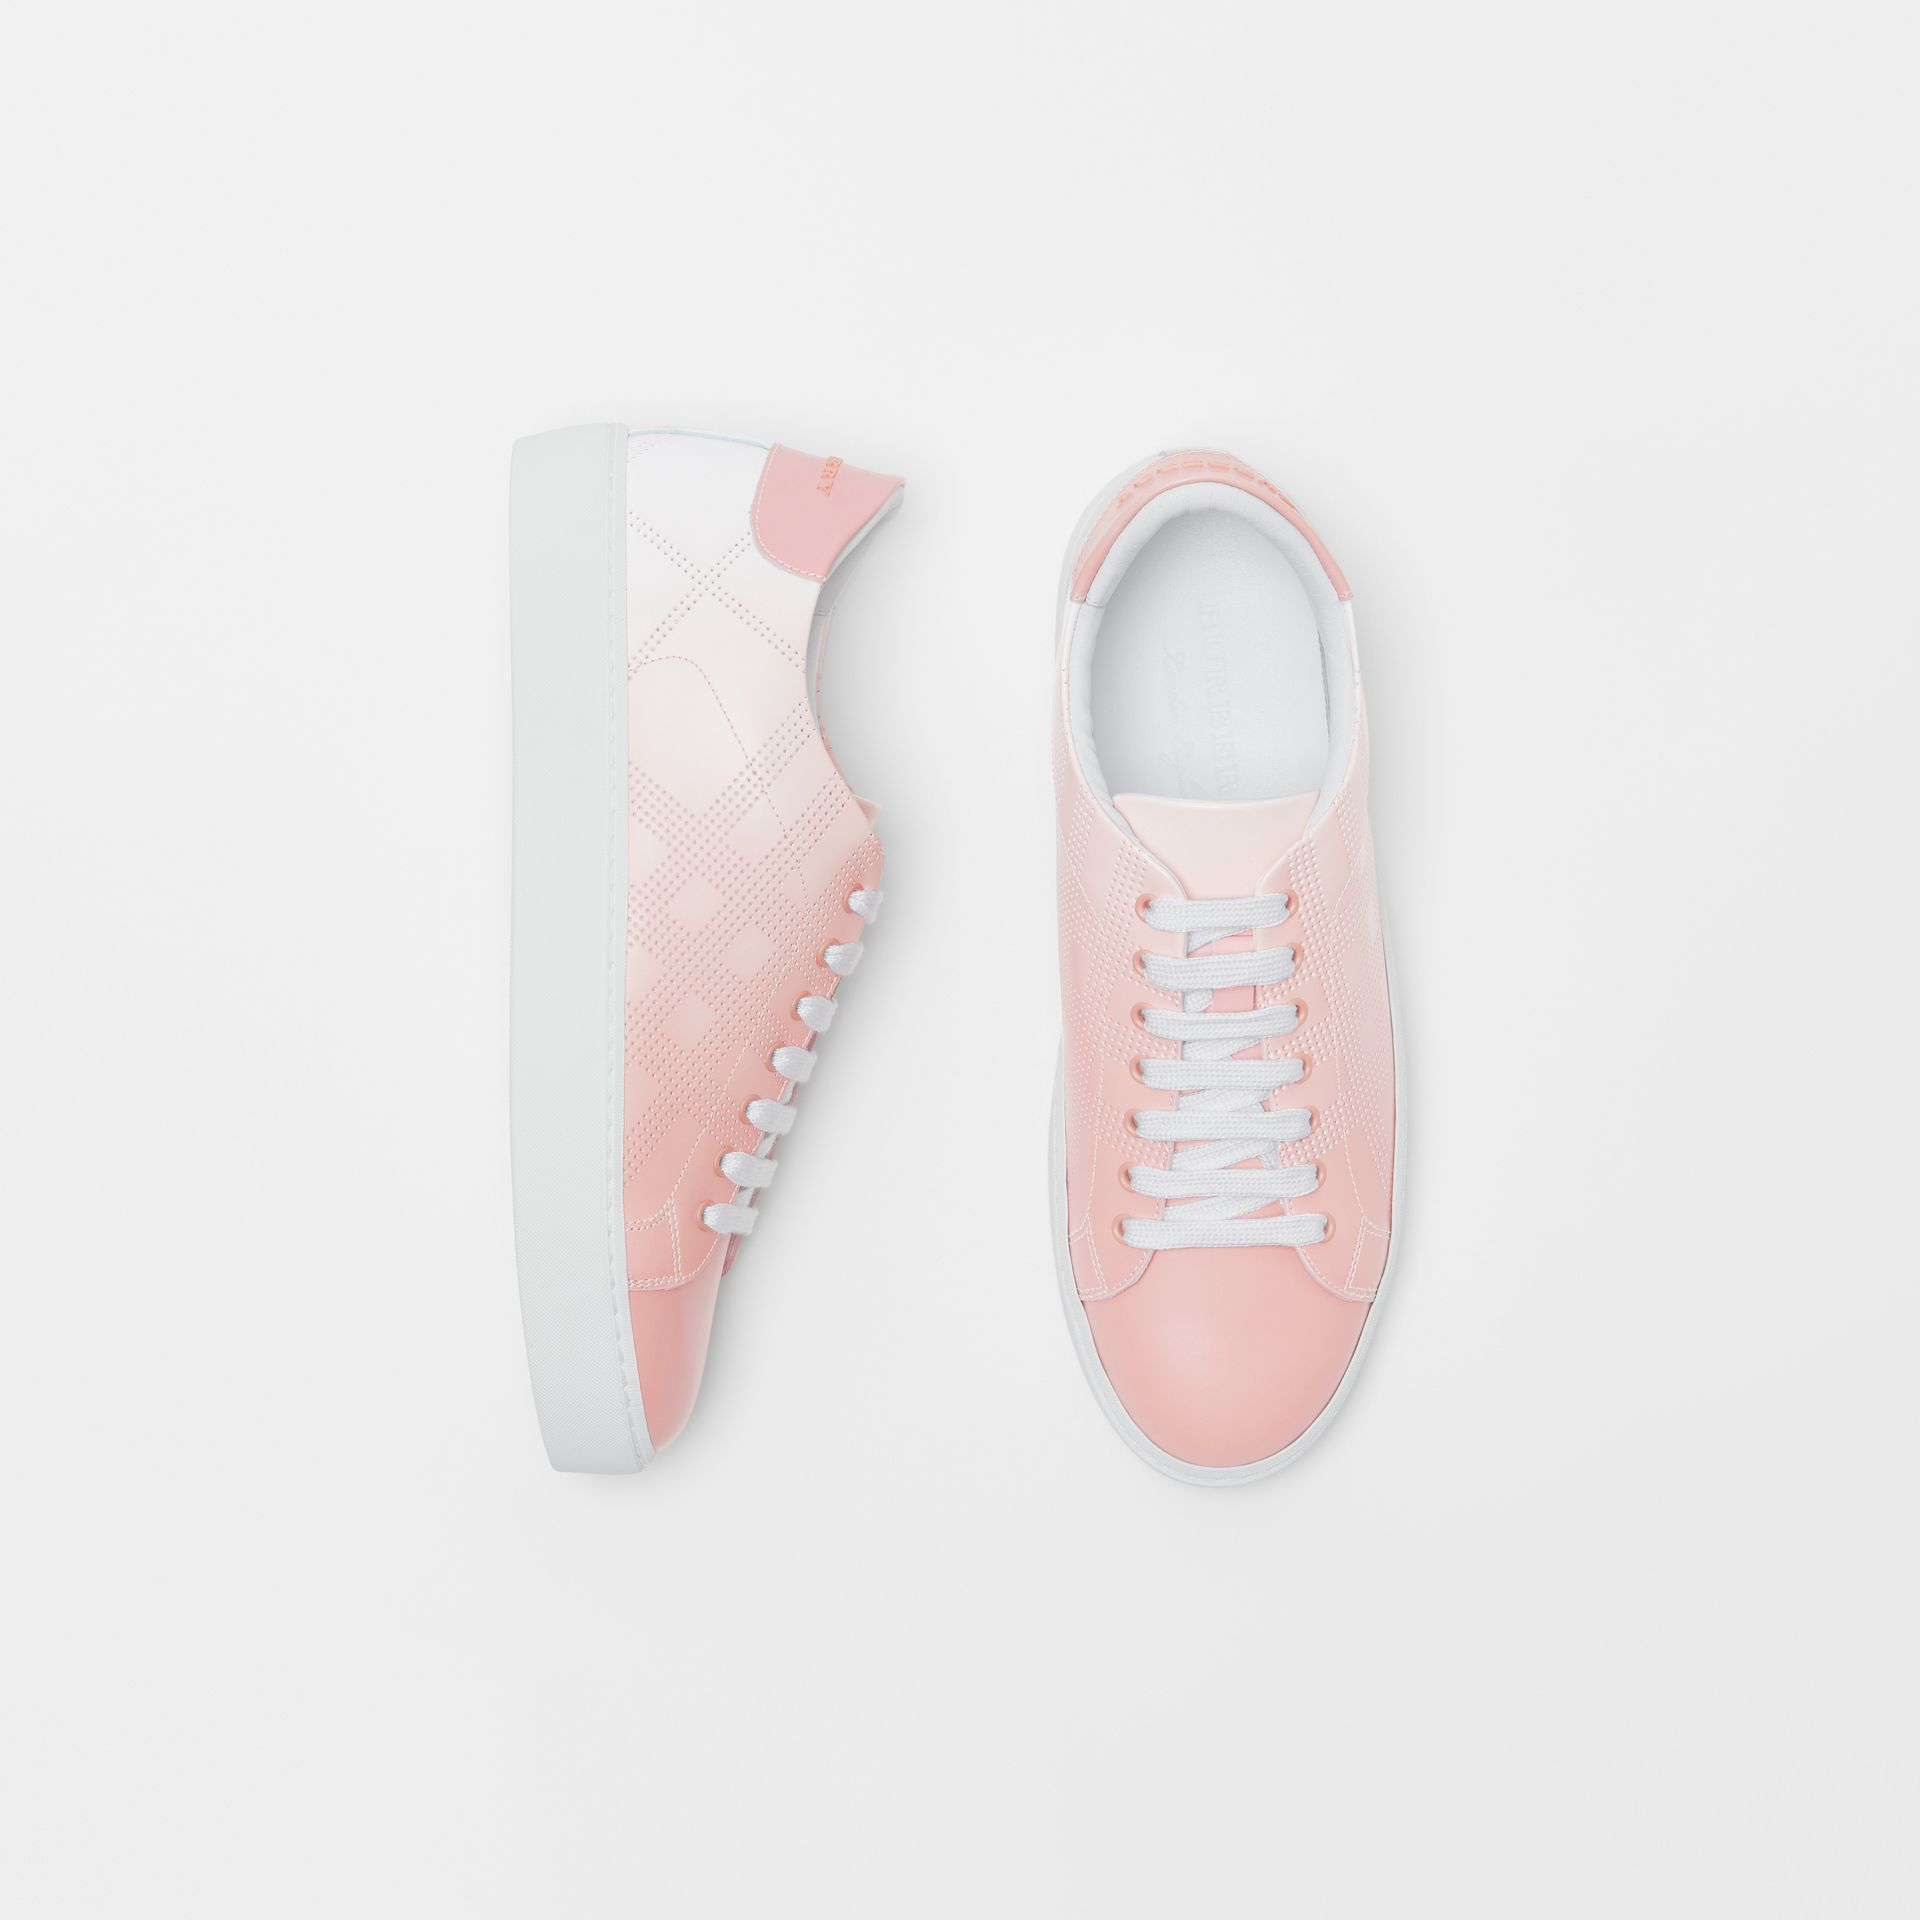 Perforated Check Dégradé Leather Sneakers in Sugar Pink - Women | Burberry Canada - gallery image 0